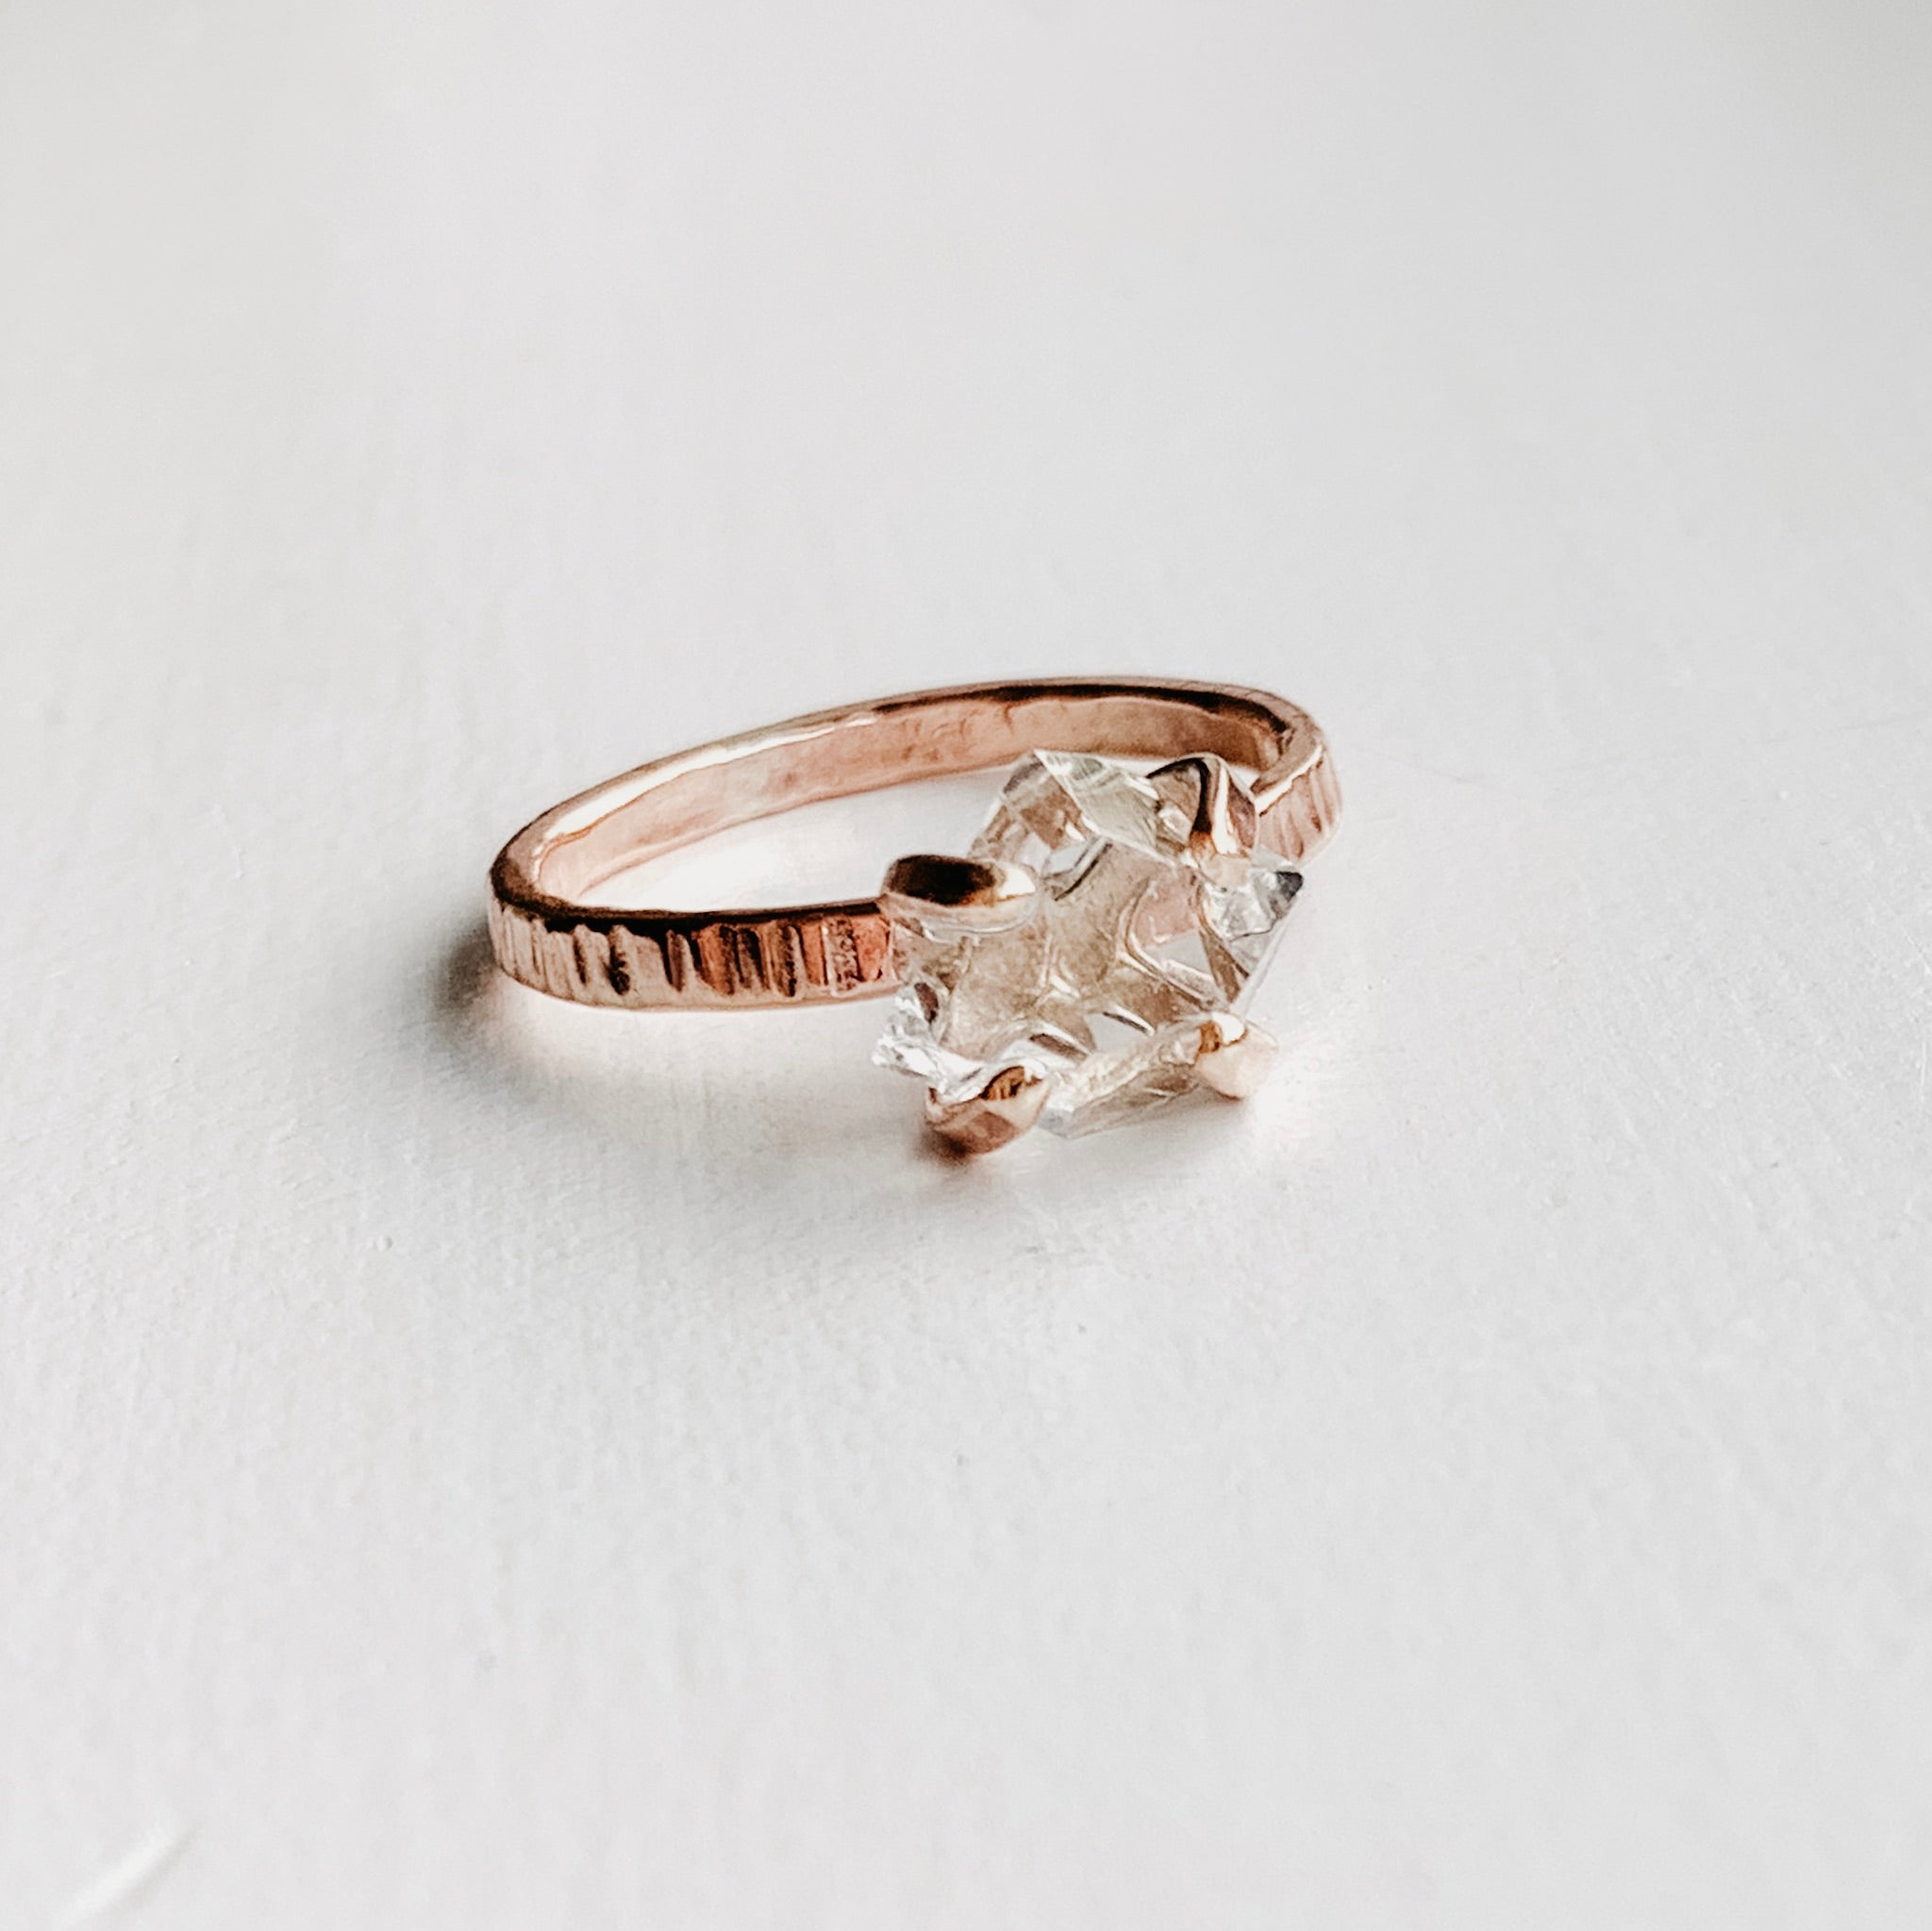 HERKIMER DIAMOND CRYSTAL RING - ROSE GOLD - SIZE 8